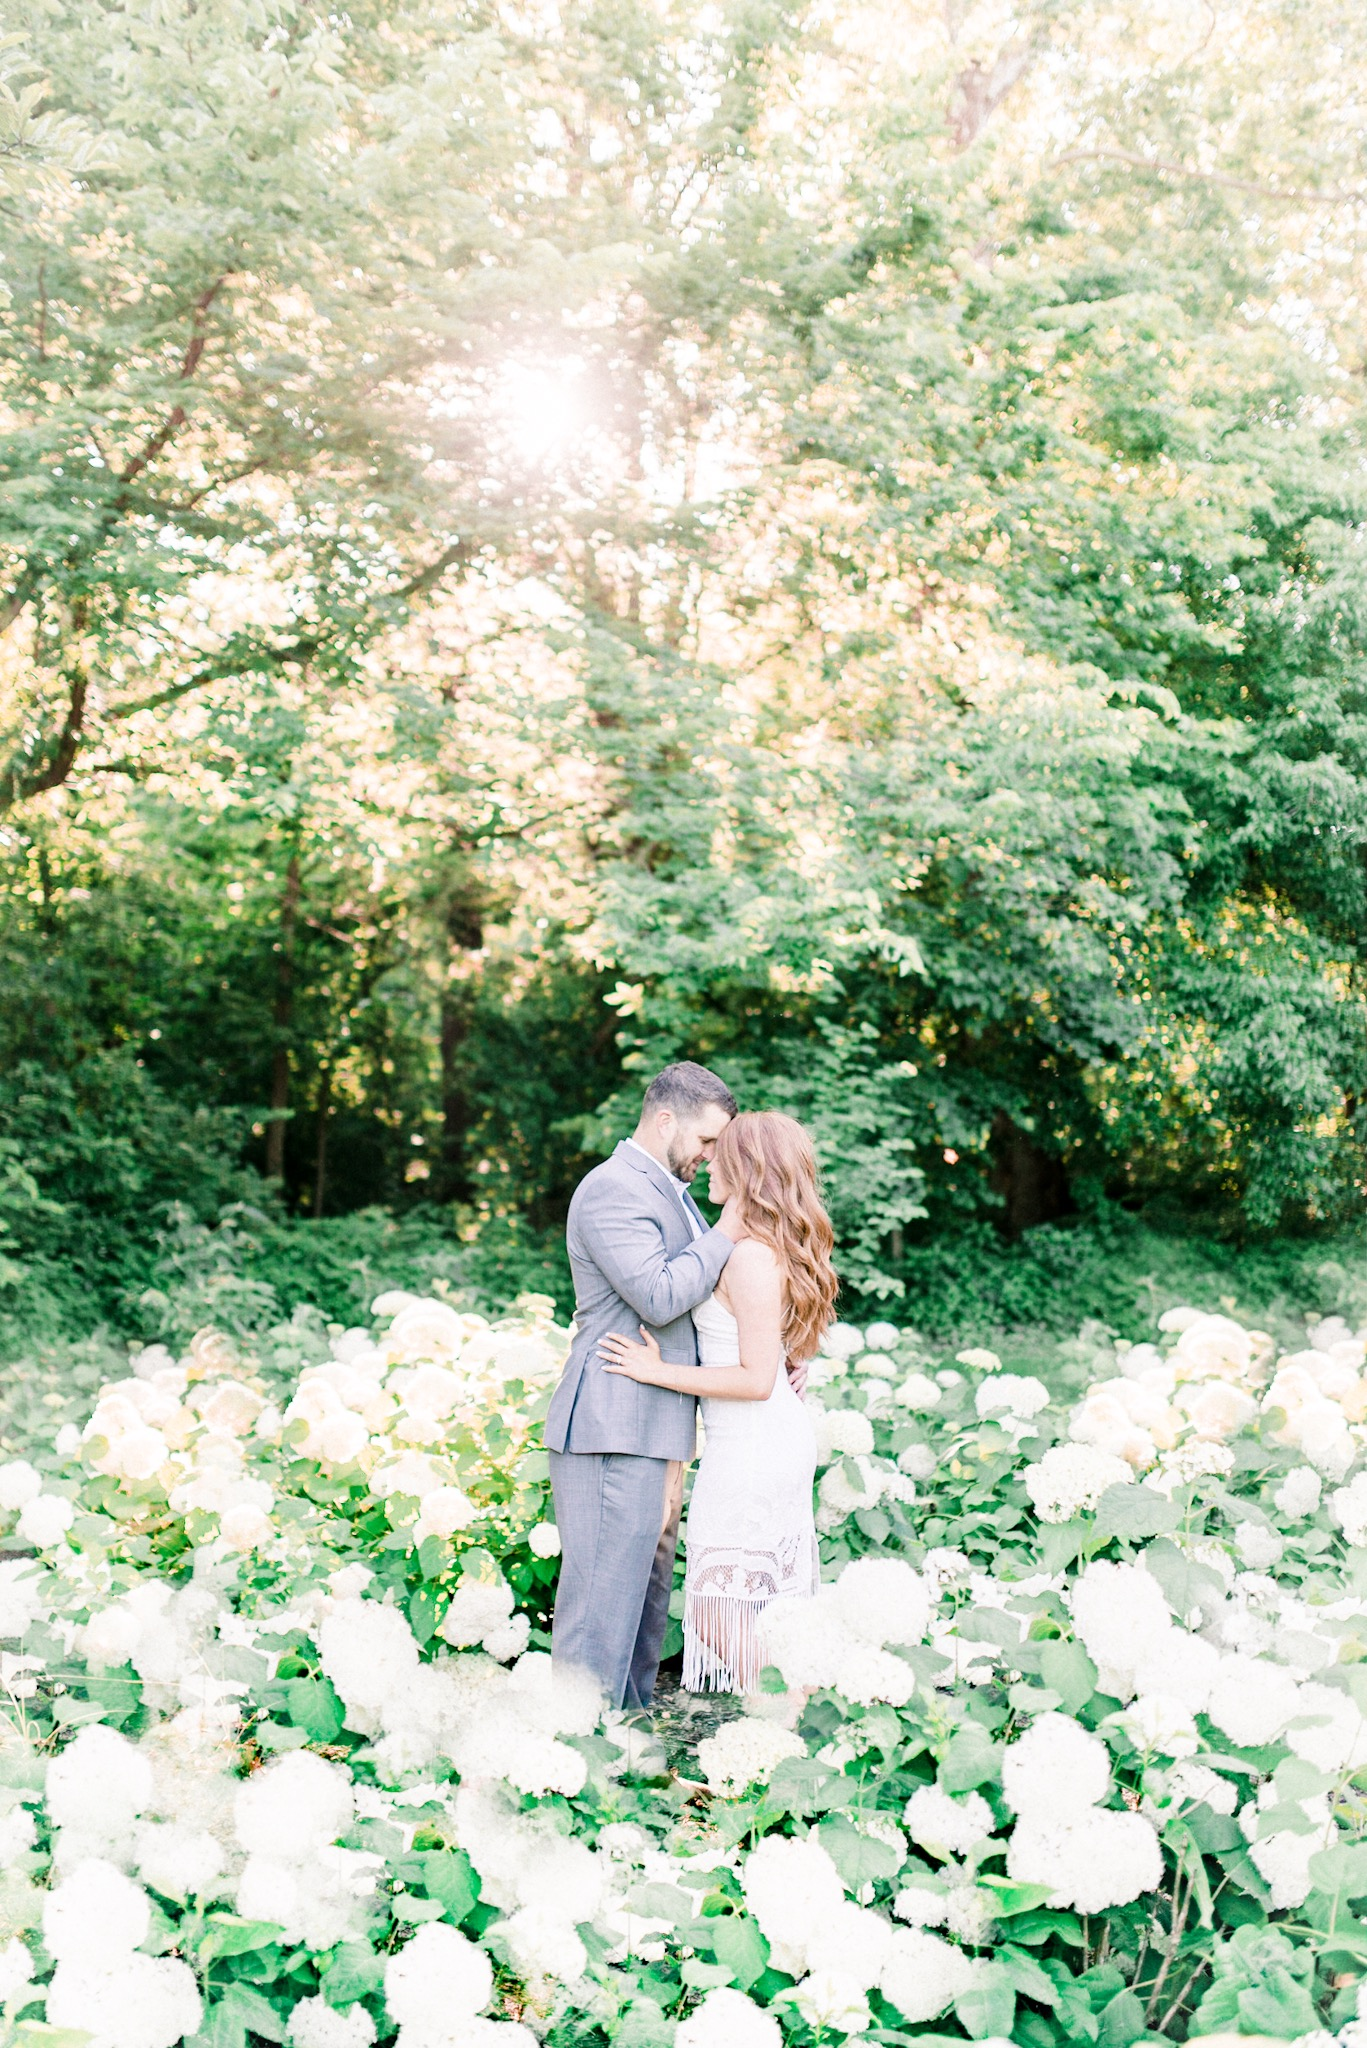 Amanda + Brian | Warm and Bright Summer Engagement Photography in Carmel, IN | Indianapolis Wedding Photographers